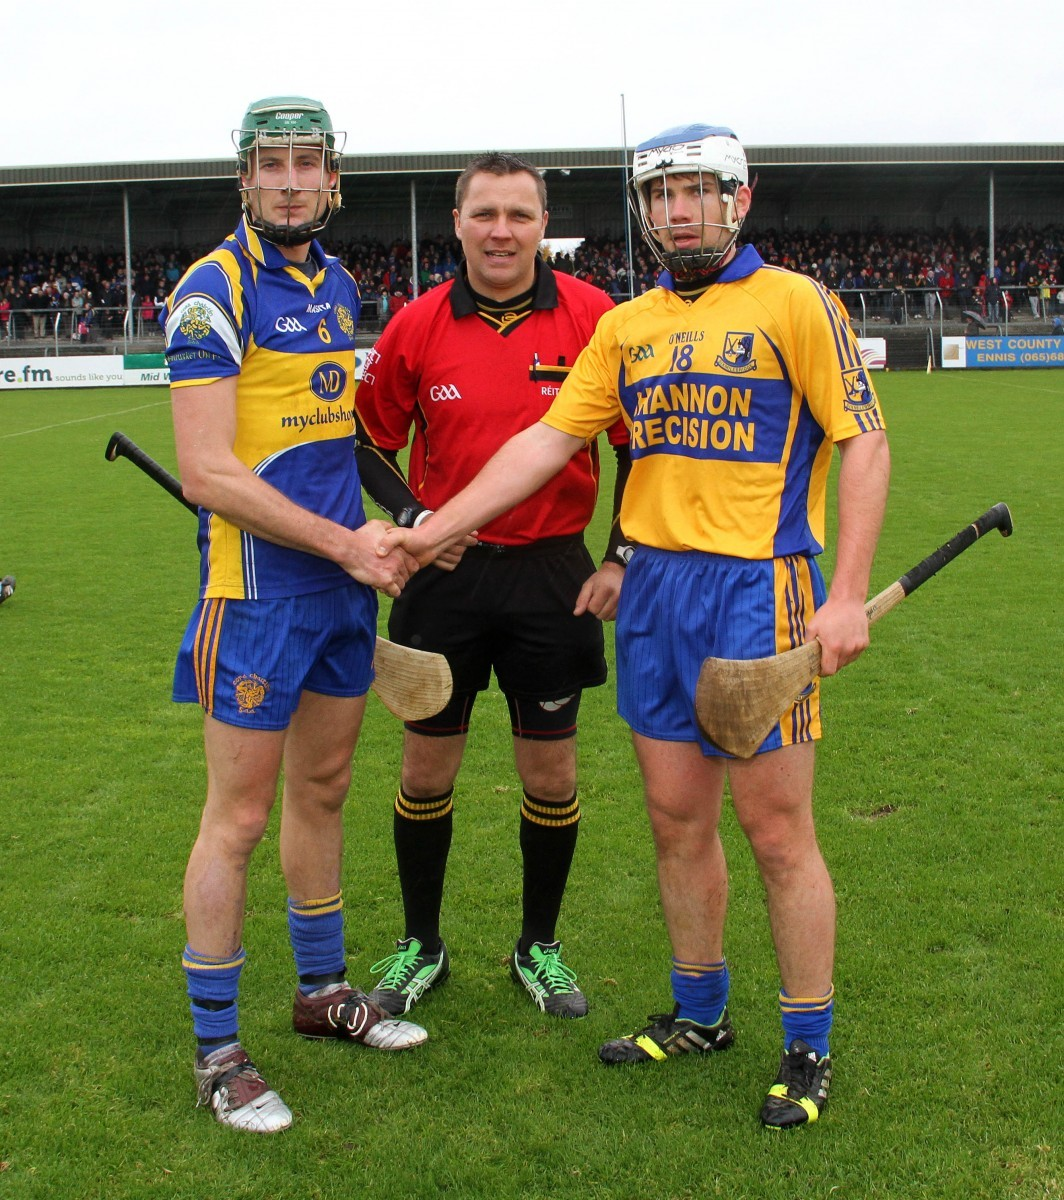 Sixmilebridge v newmarket on fergus 4